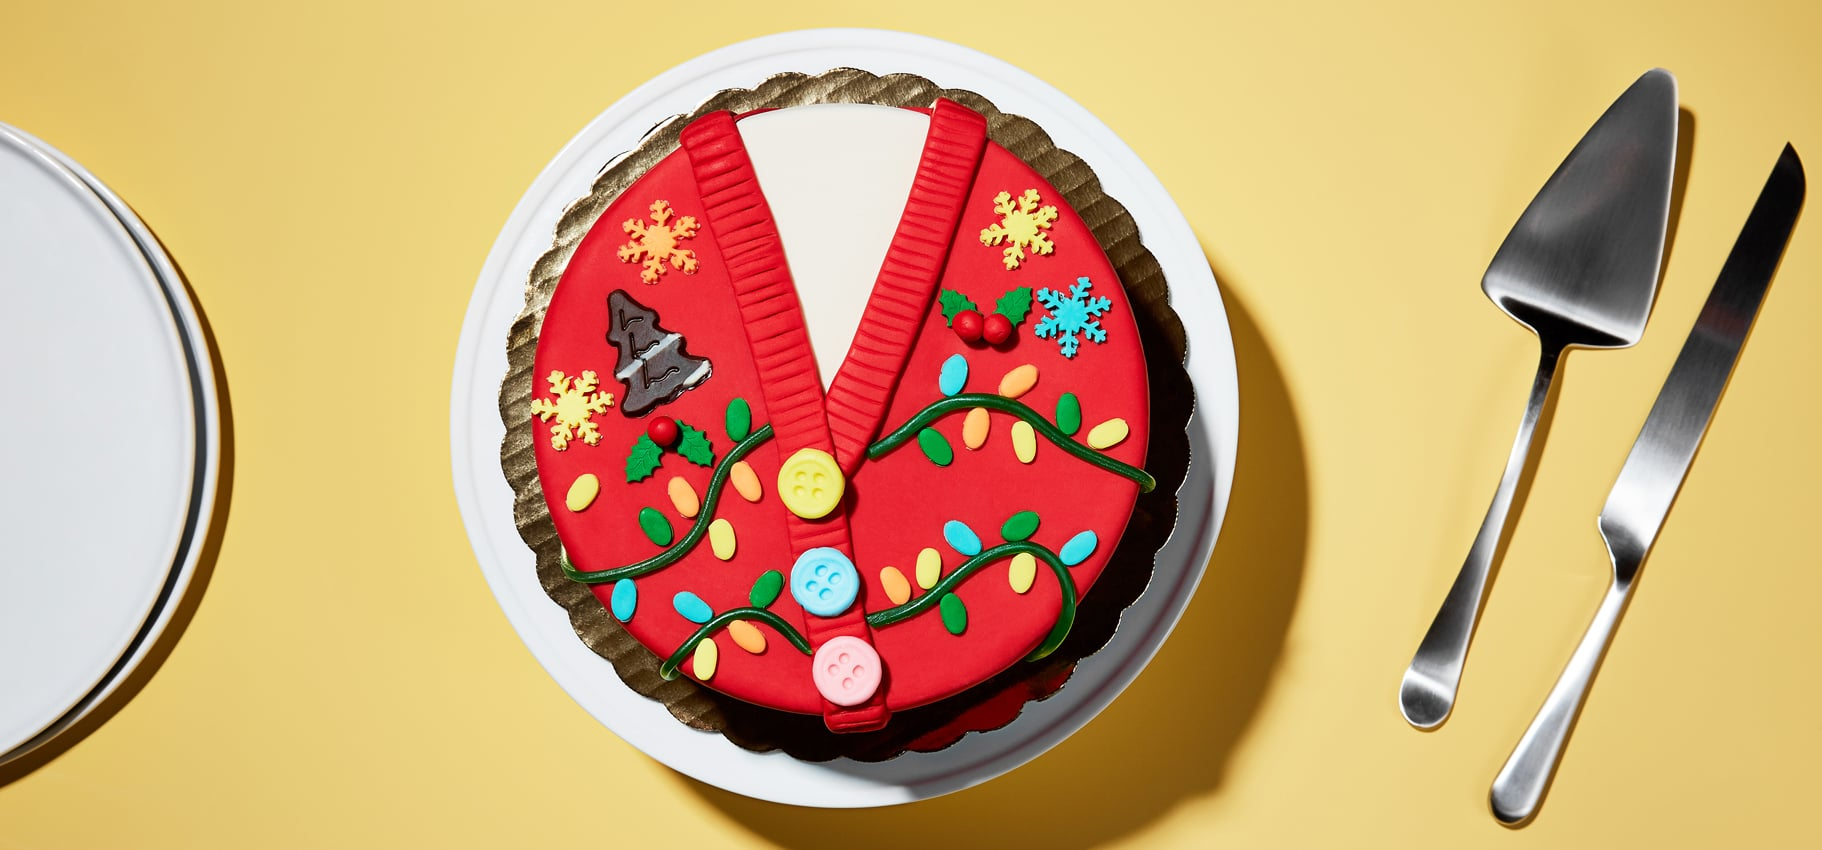 How to Make An Ugly Sweater Ice Cream Cake | POPSUGAR Food